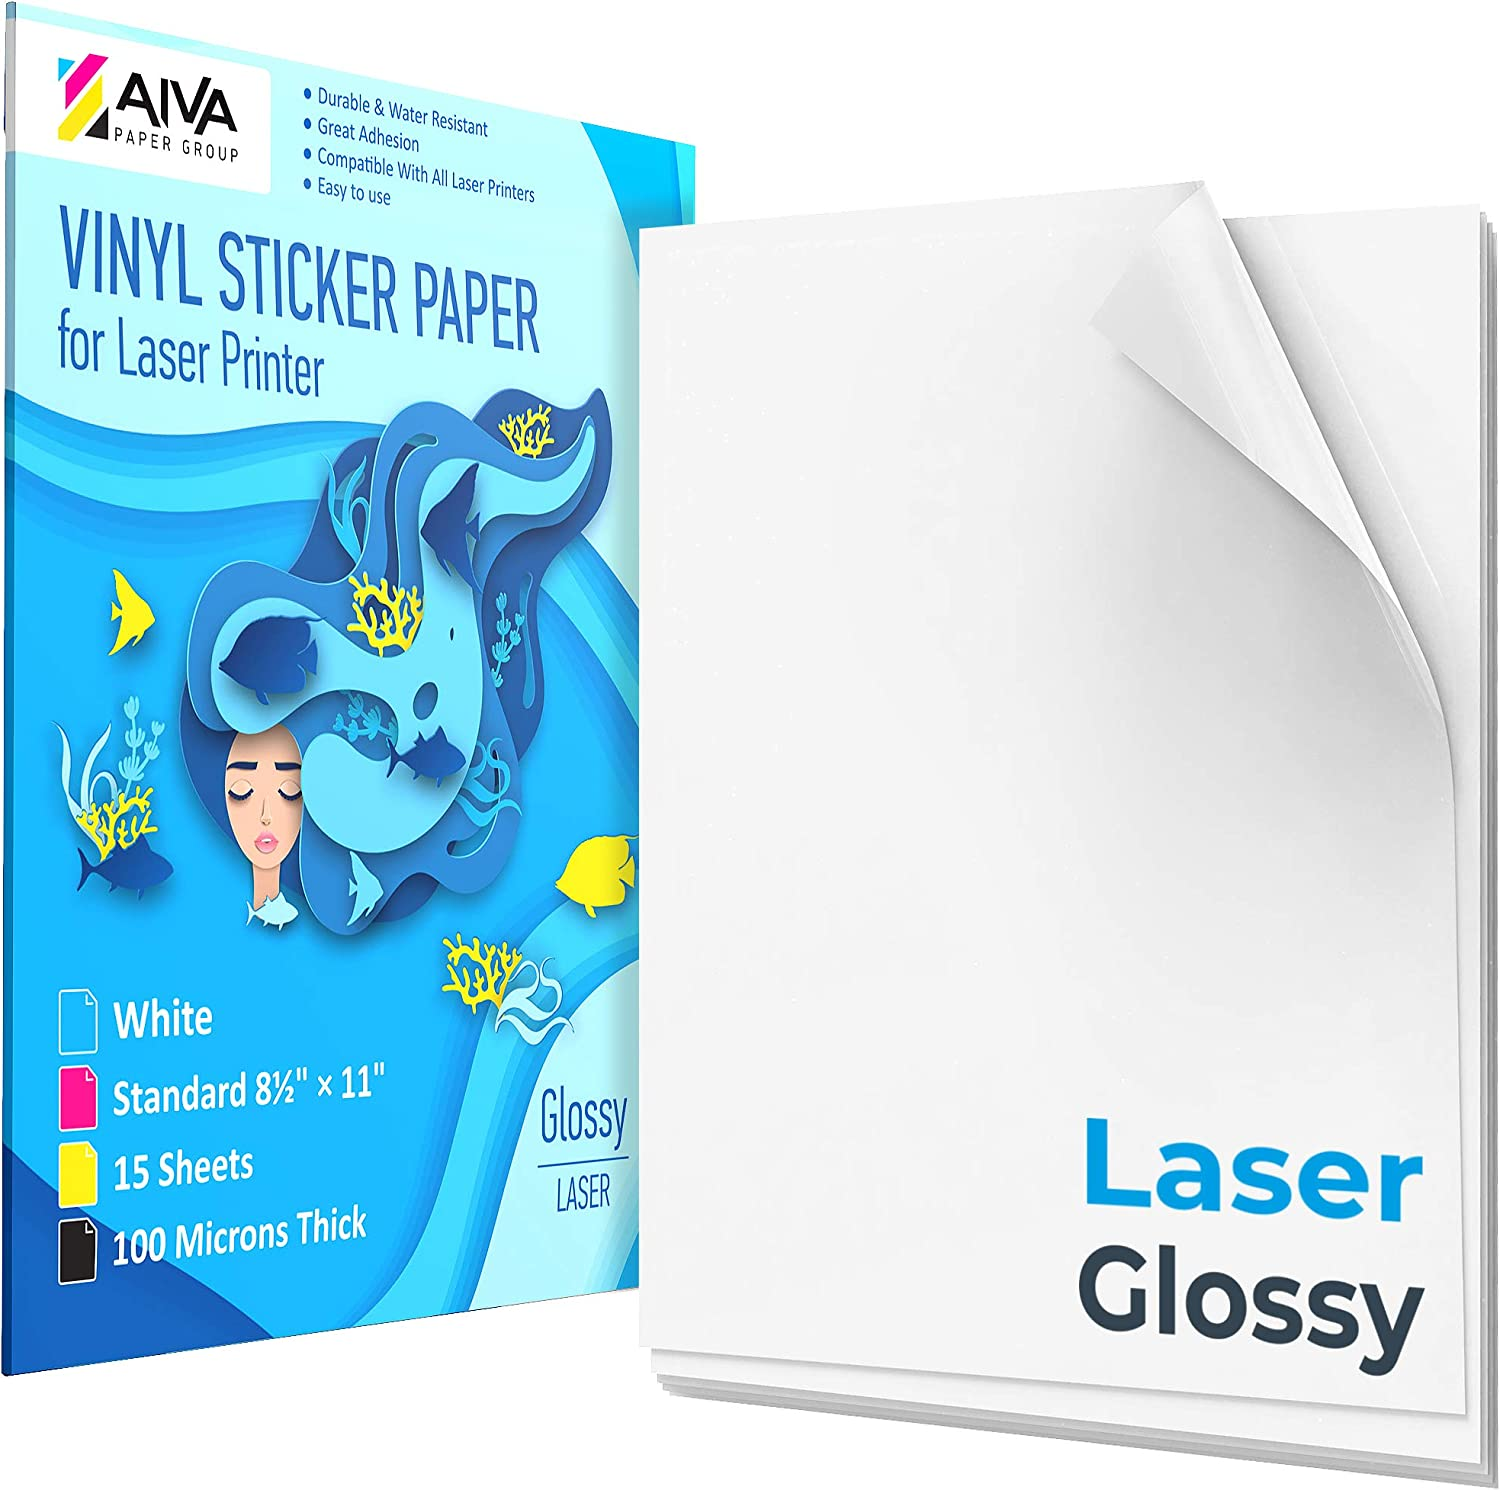 """Printable Vinyl Sticker Paper for Laser Printer - Glossy White - 15 Self-Adhesive Sheets - Waterproof Decal Paper - Standard Letter Size 8.5""""x11"""""""